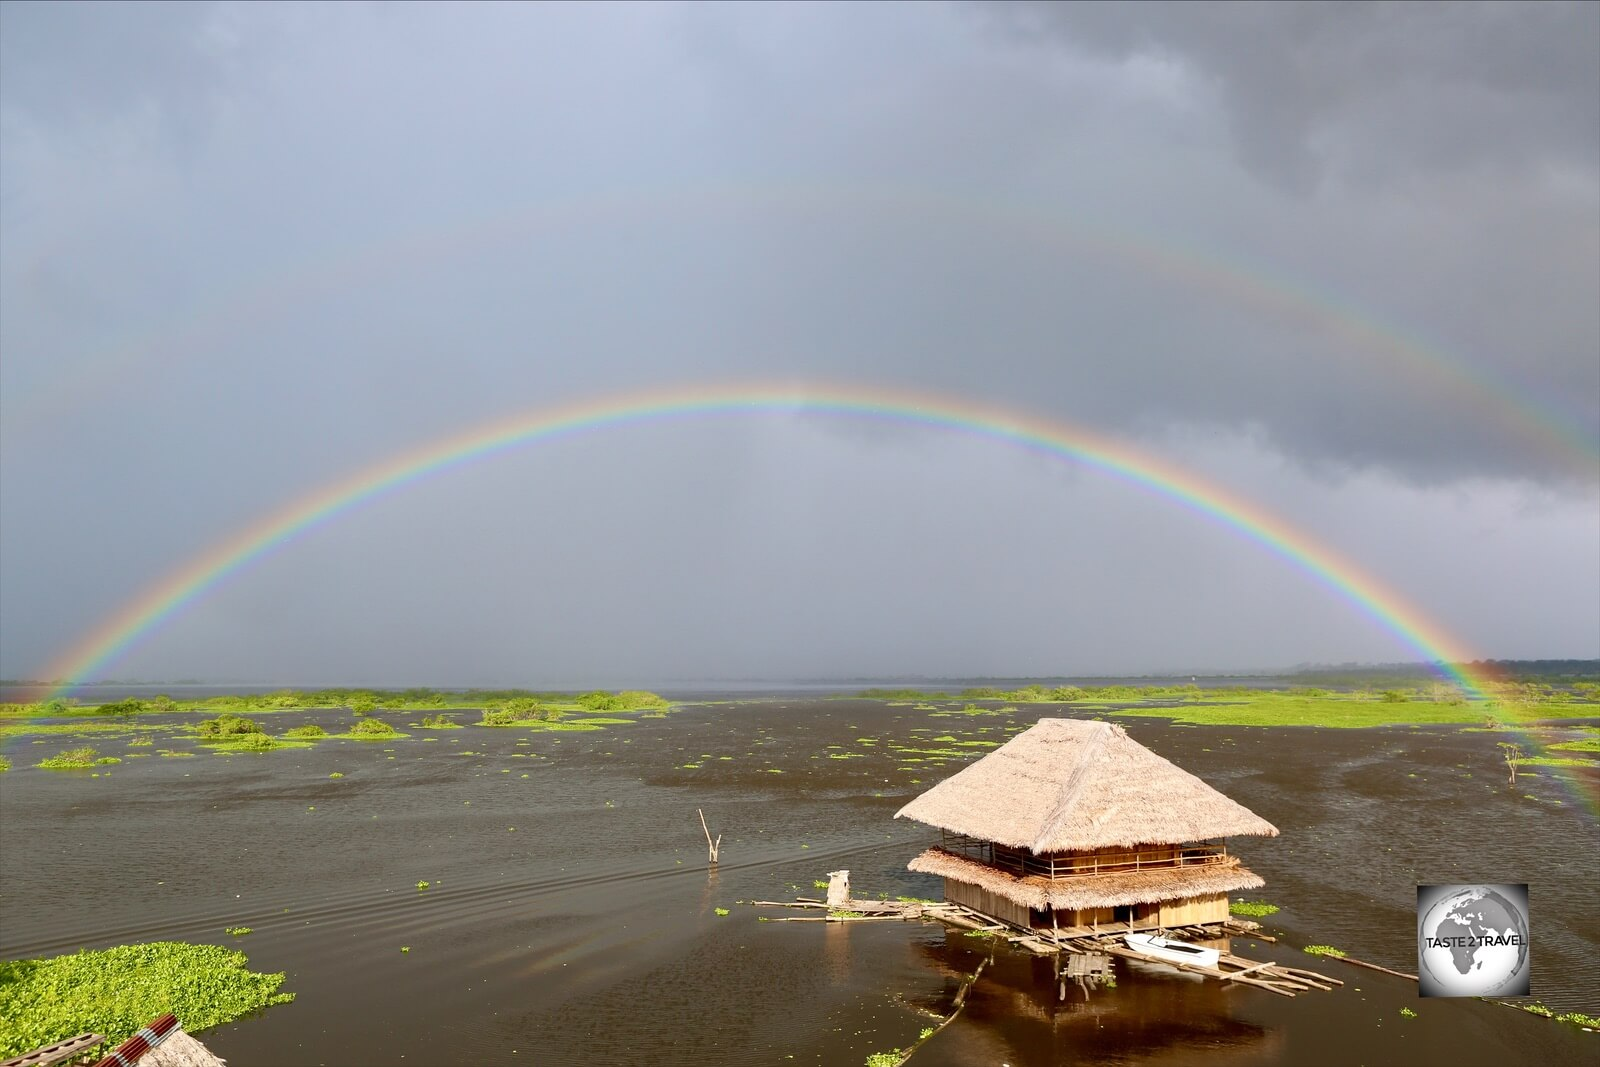 """A rainbow forms over the Amazon river in Iquitos, a city which is known as the """"capital of the Peruvian Amazon""""."""